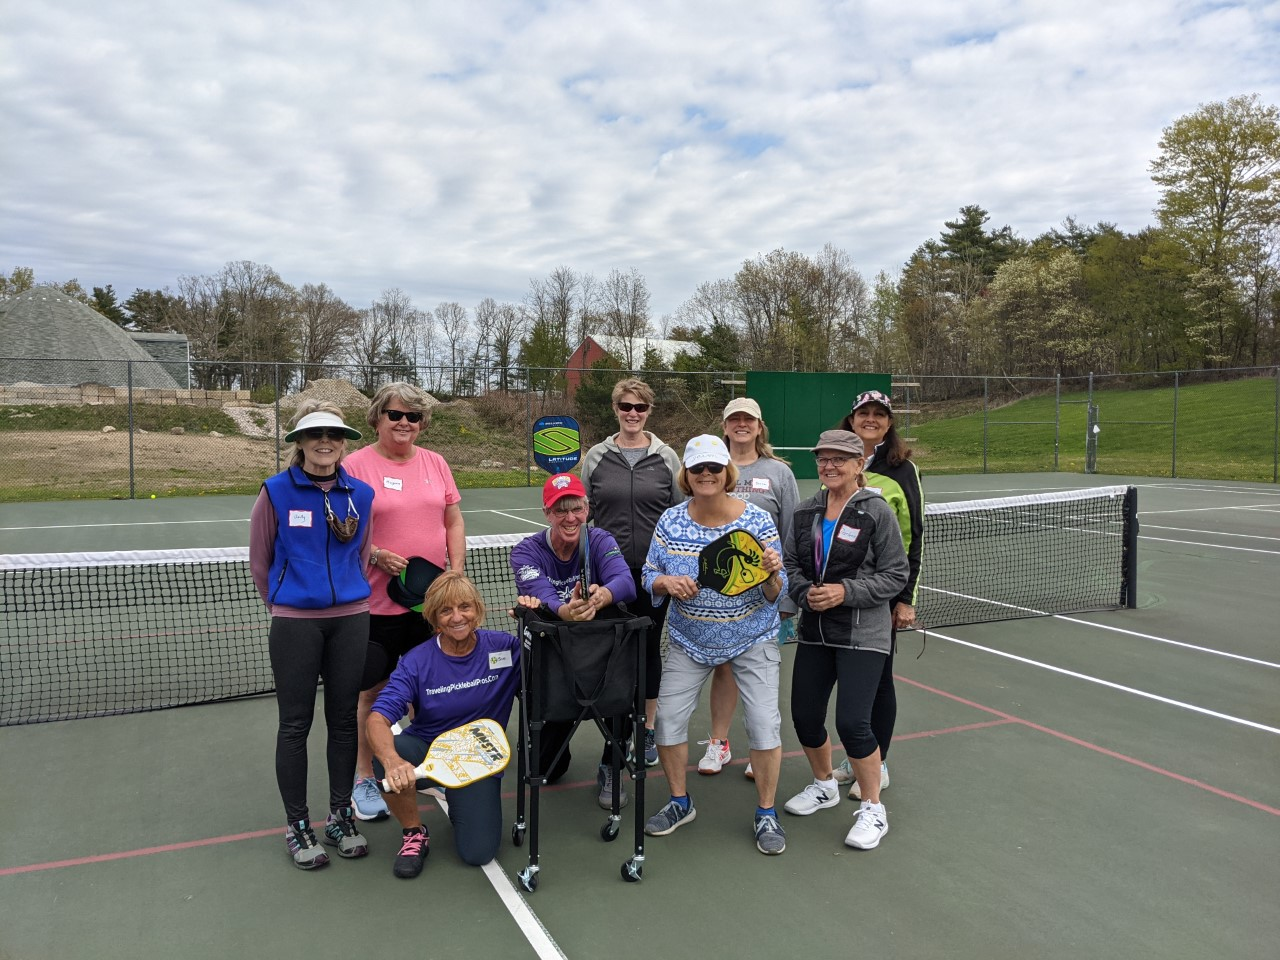 Traveling Pickleball Pros in Stratham, New Hampshire!